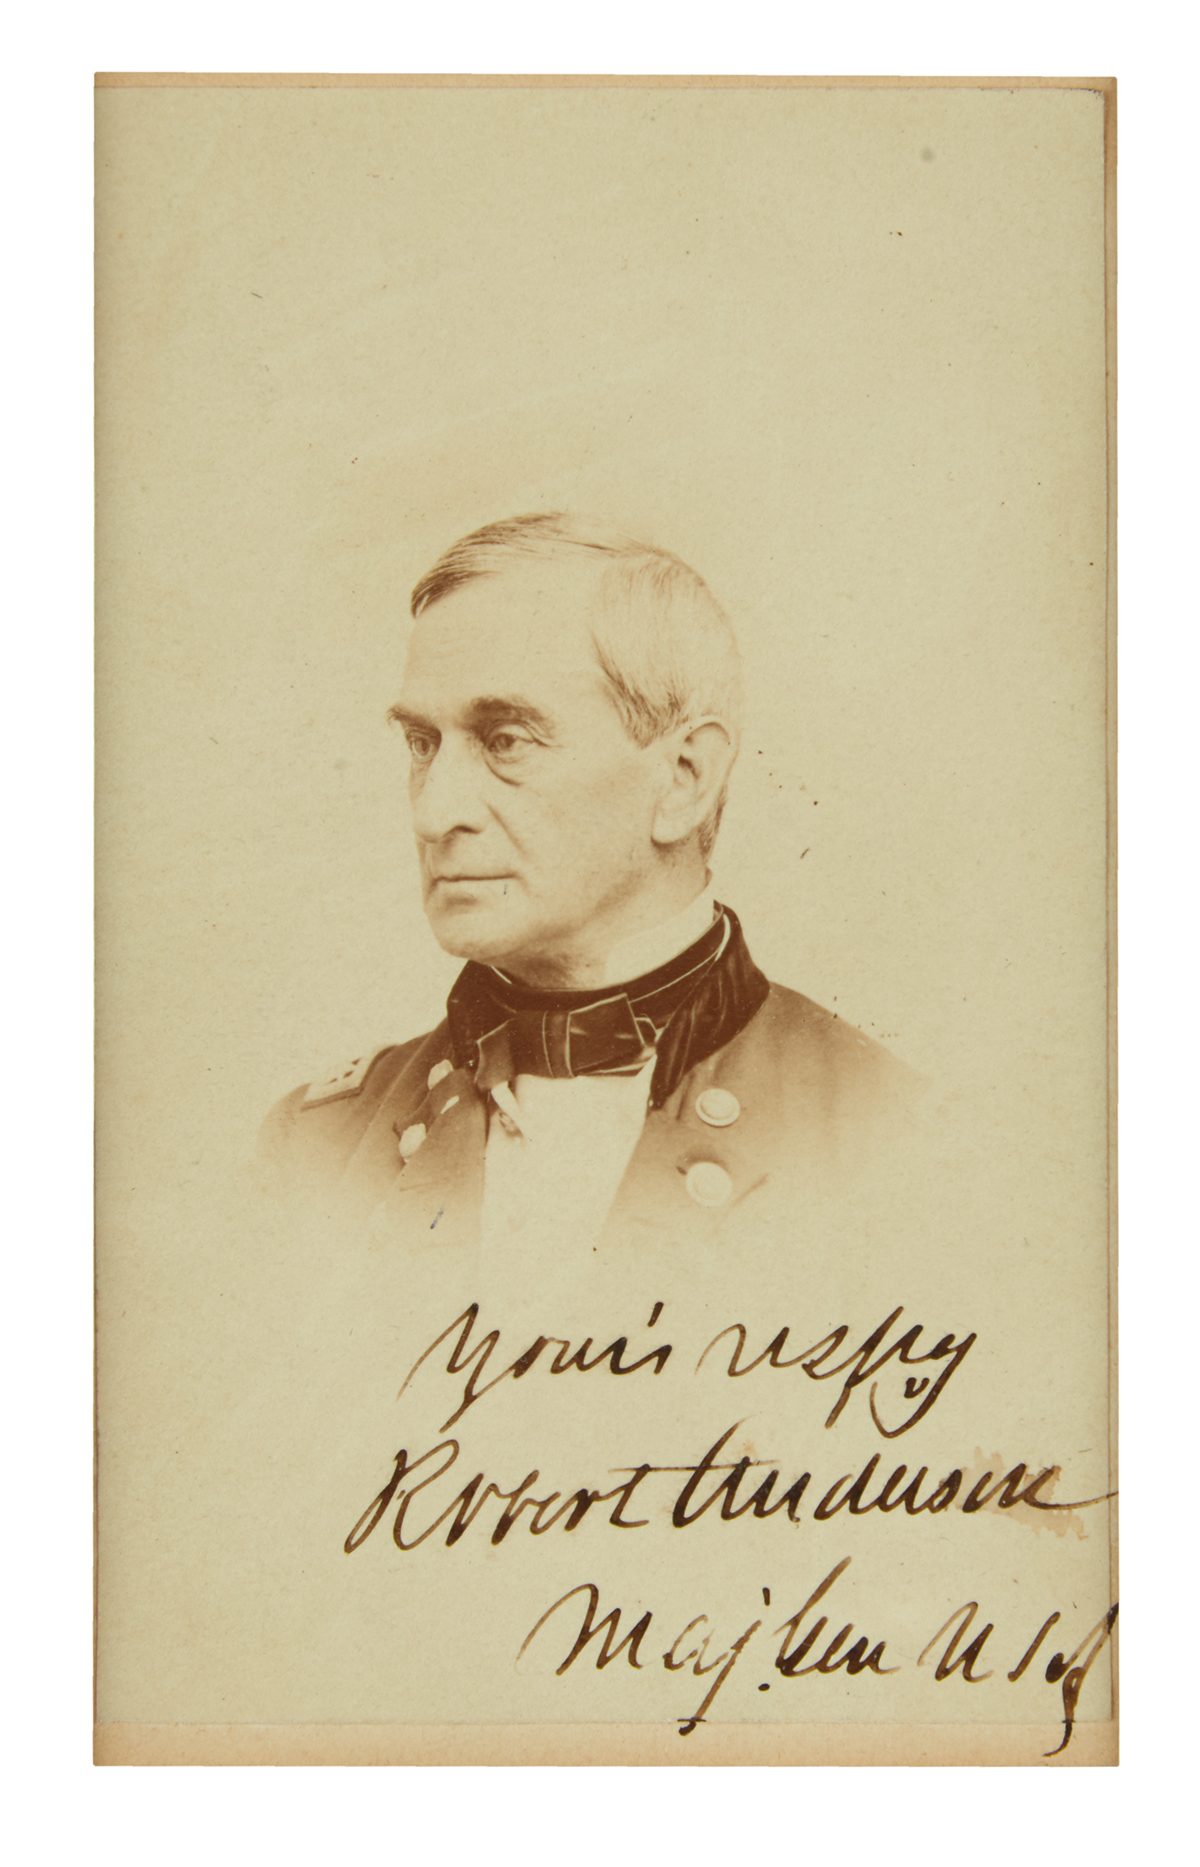 (CIVIL-WAR)-ANDERSON-ROBERT-Photograph-Signed-and-Inscribed-